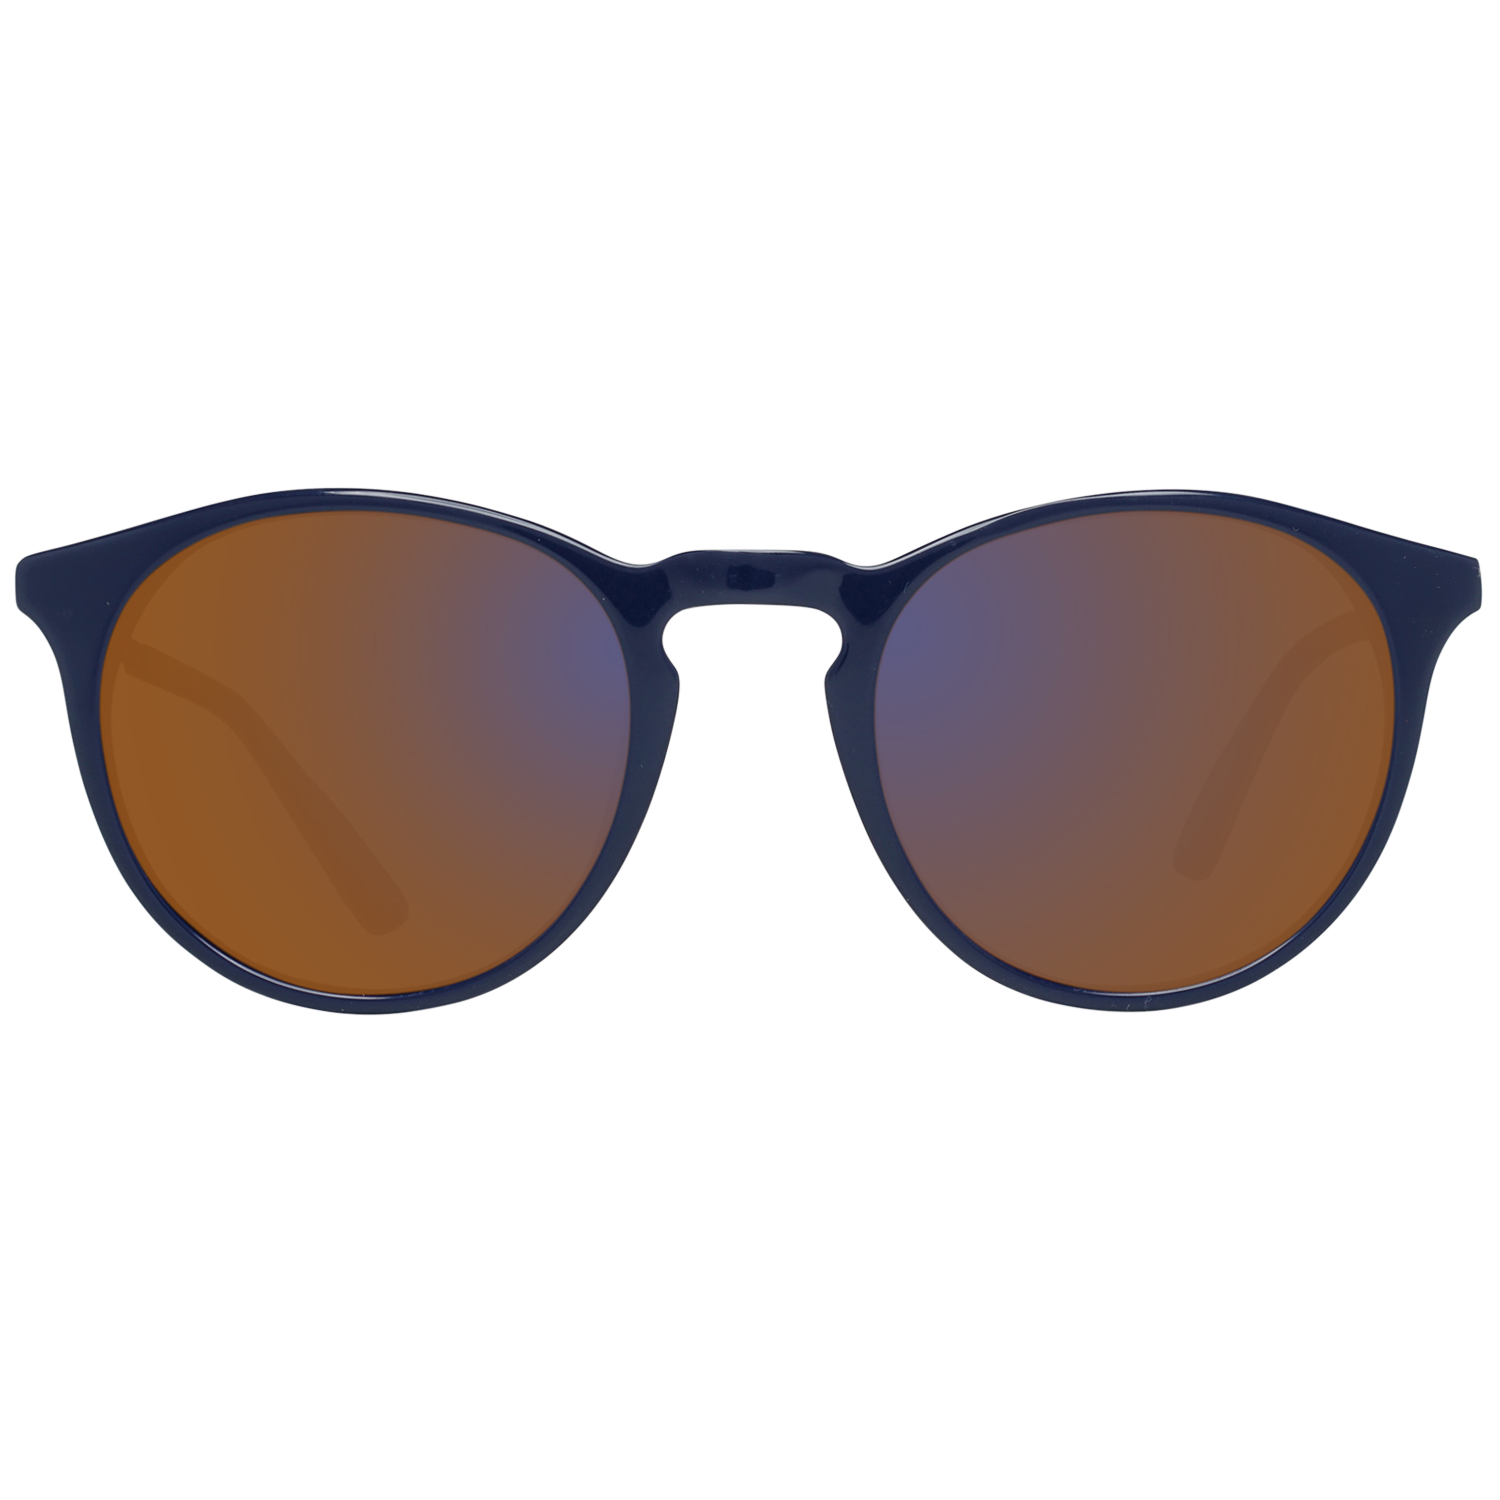 Helly Hansen Sunglasses HH5020 C03 49 Women Blue